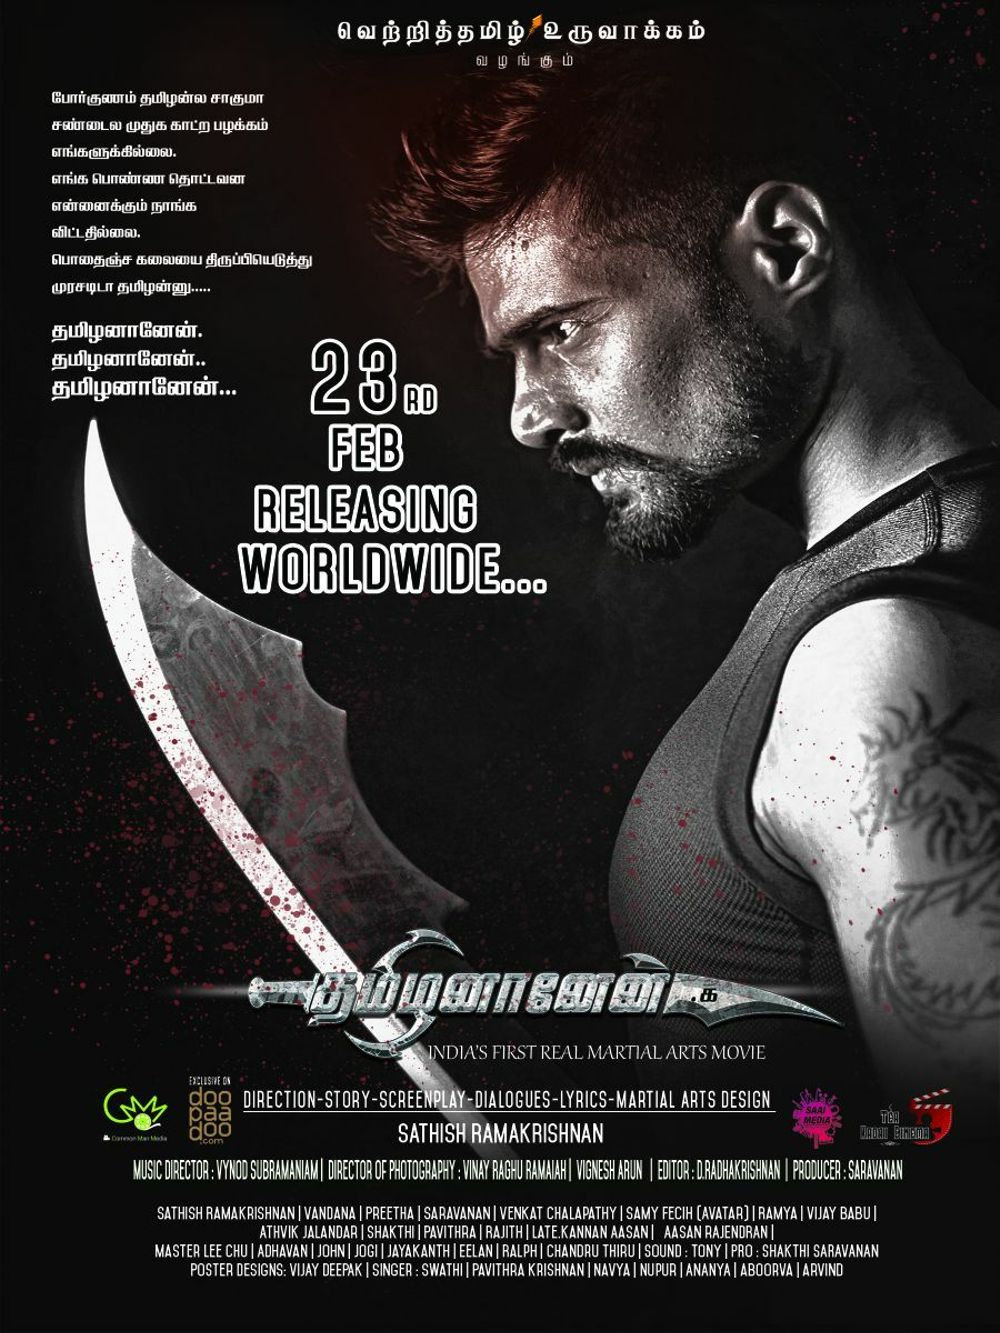 Tamizhananean.Ka Movie Review Tamil Movie Review